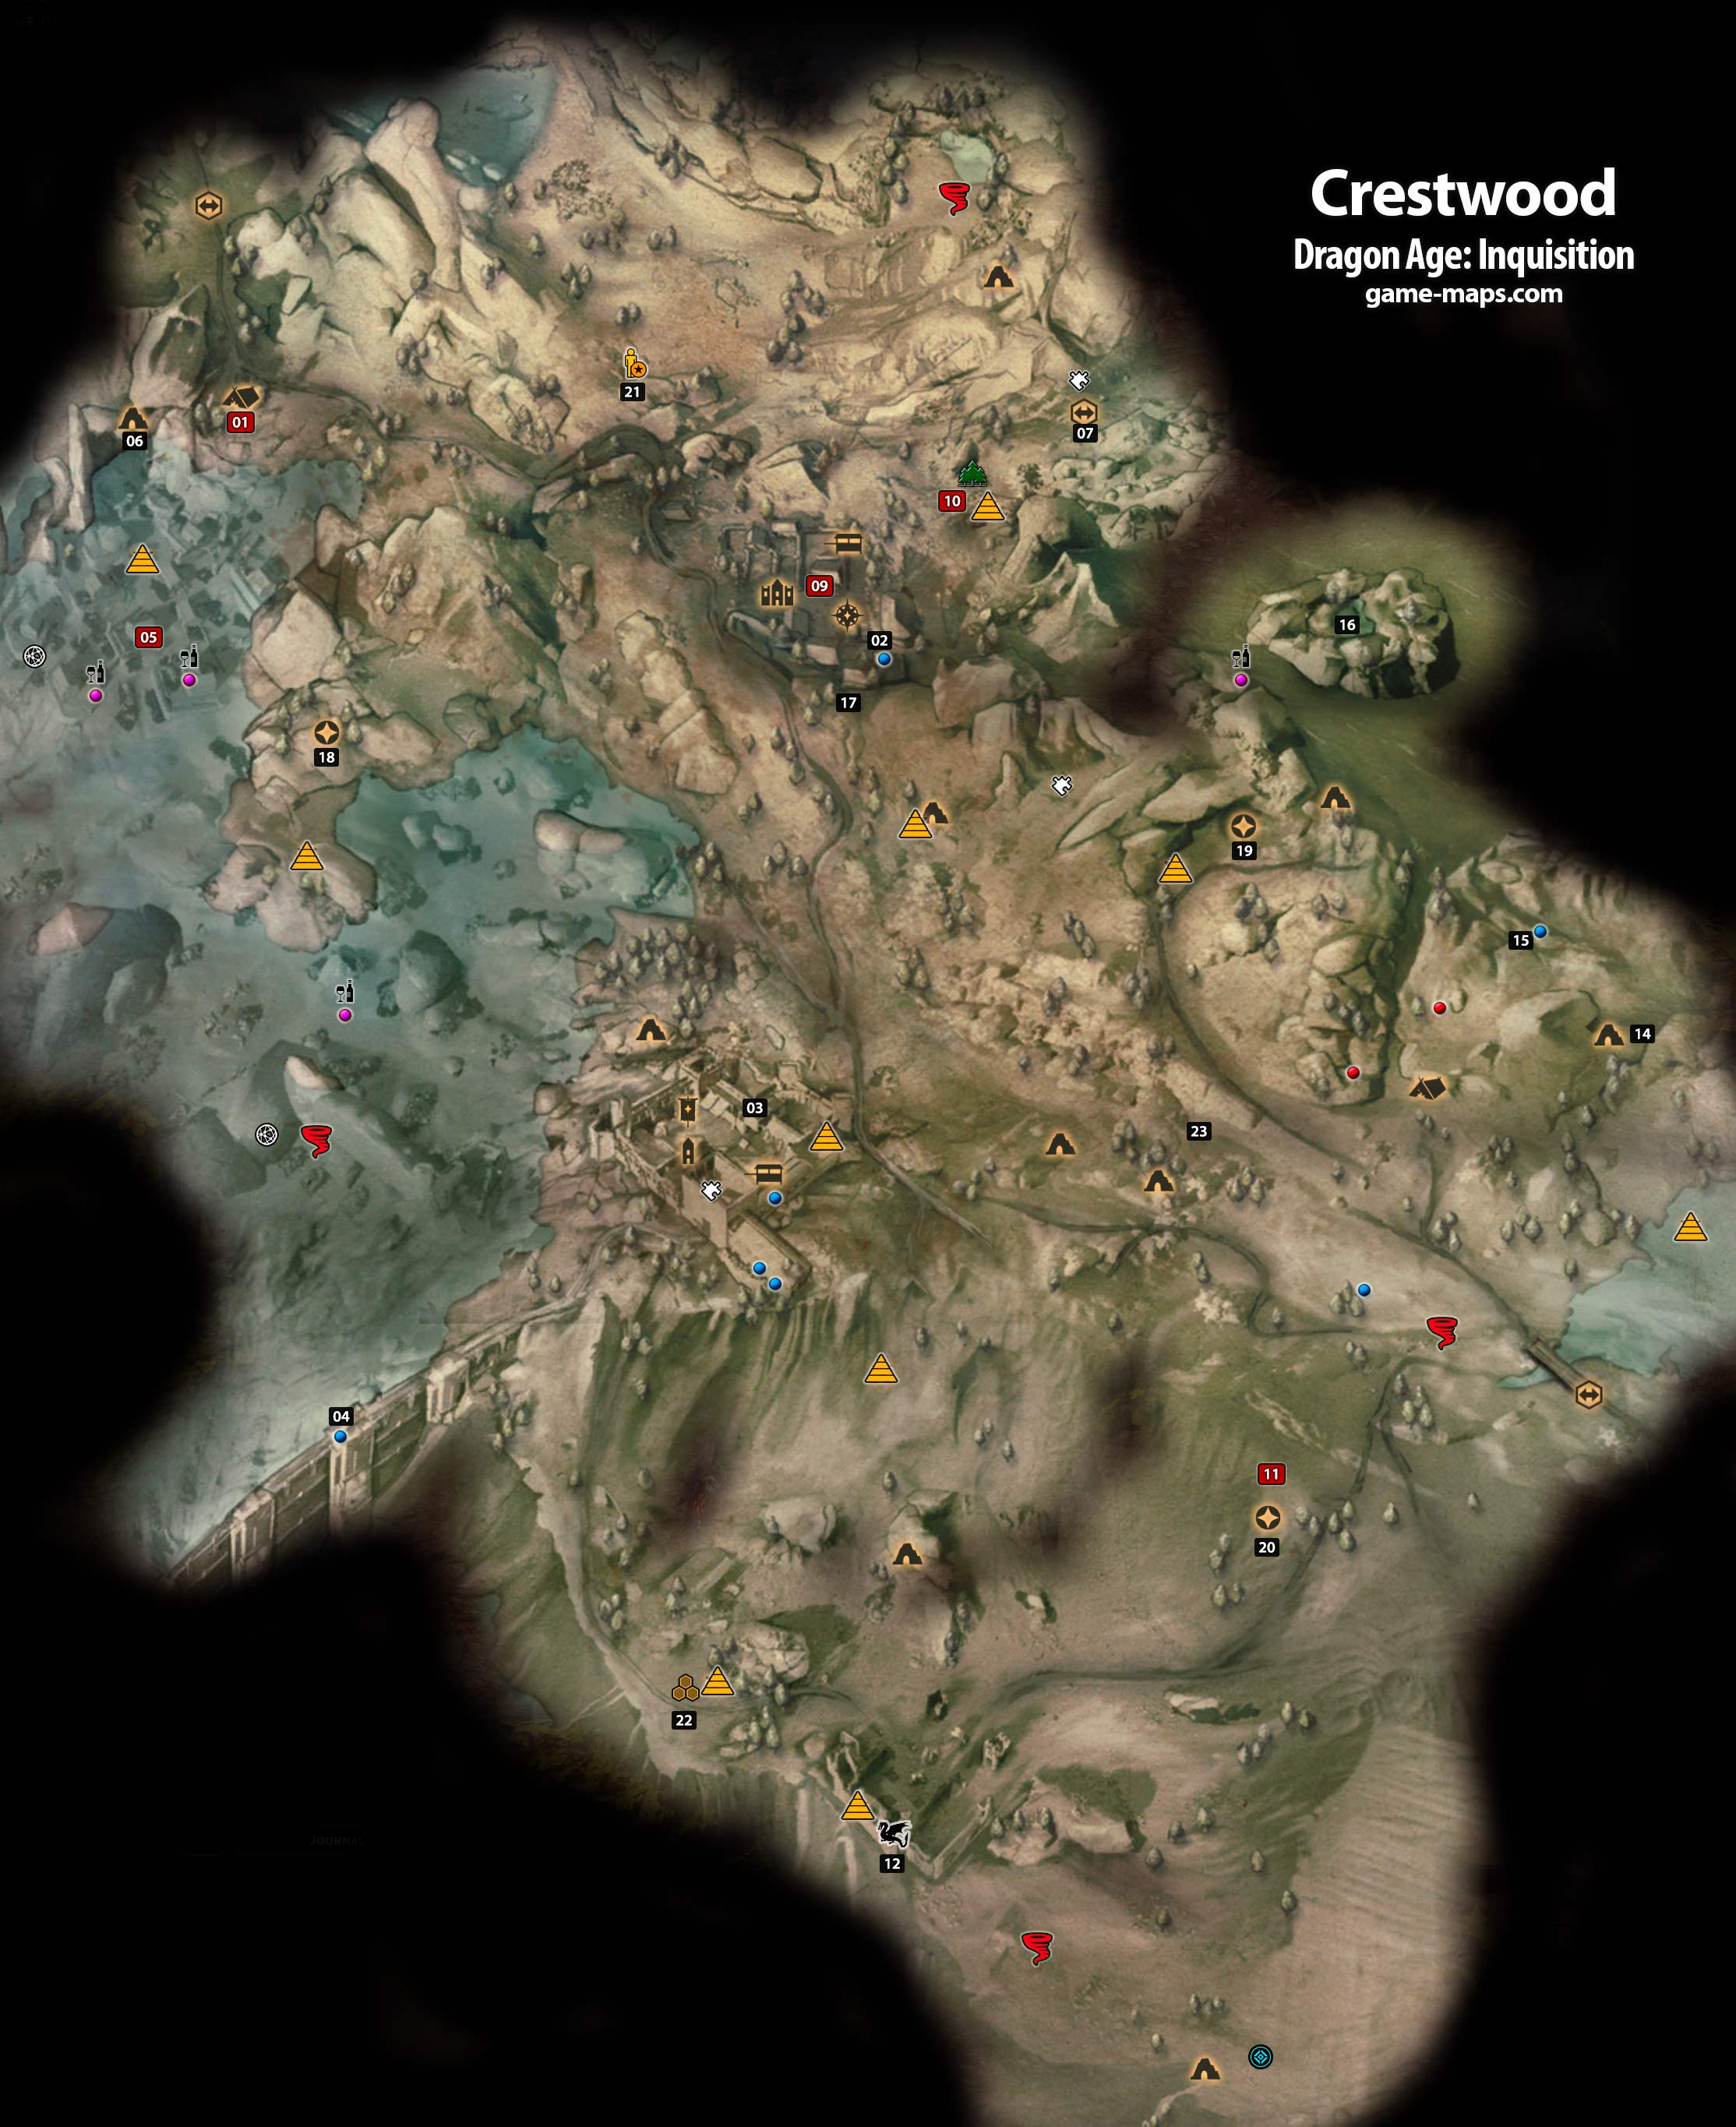 Crestwood - Dragon Age: Inquisition | game-maps.com on